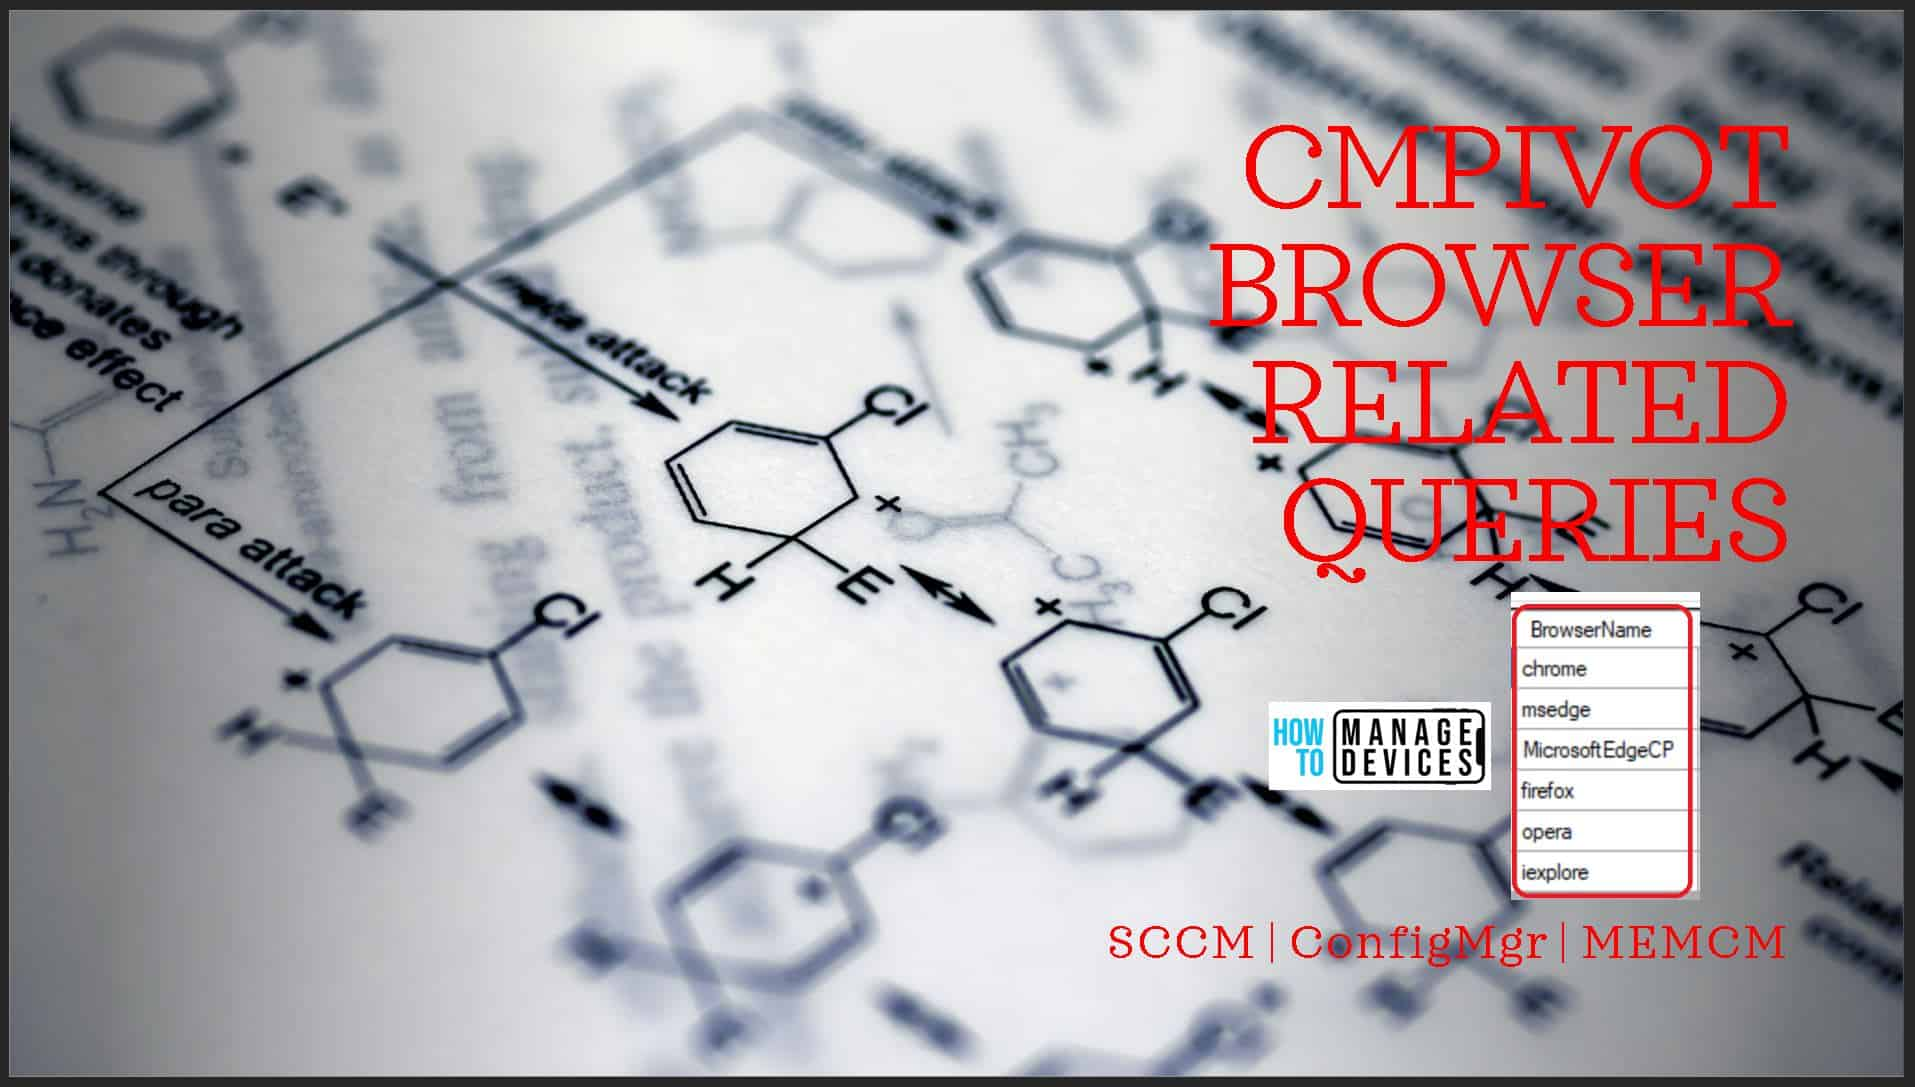 SCCM CMPivot Browser Related Queries Default List of Browsers - ConfigMgr